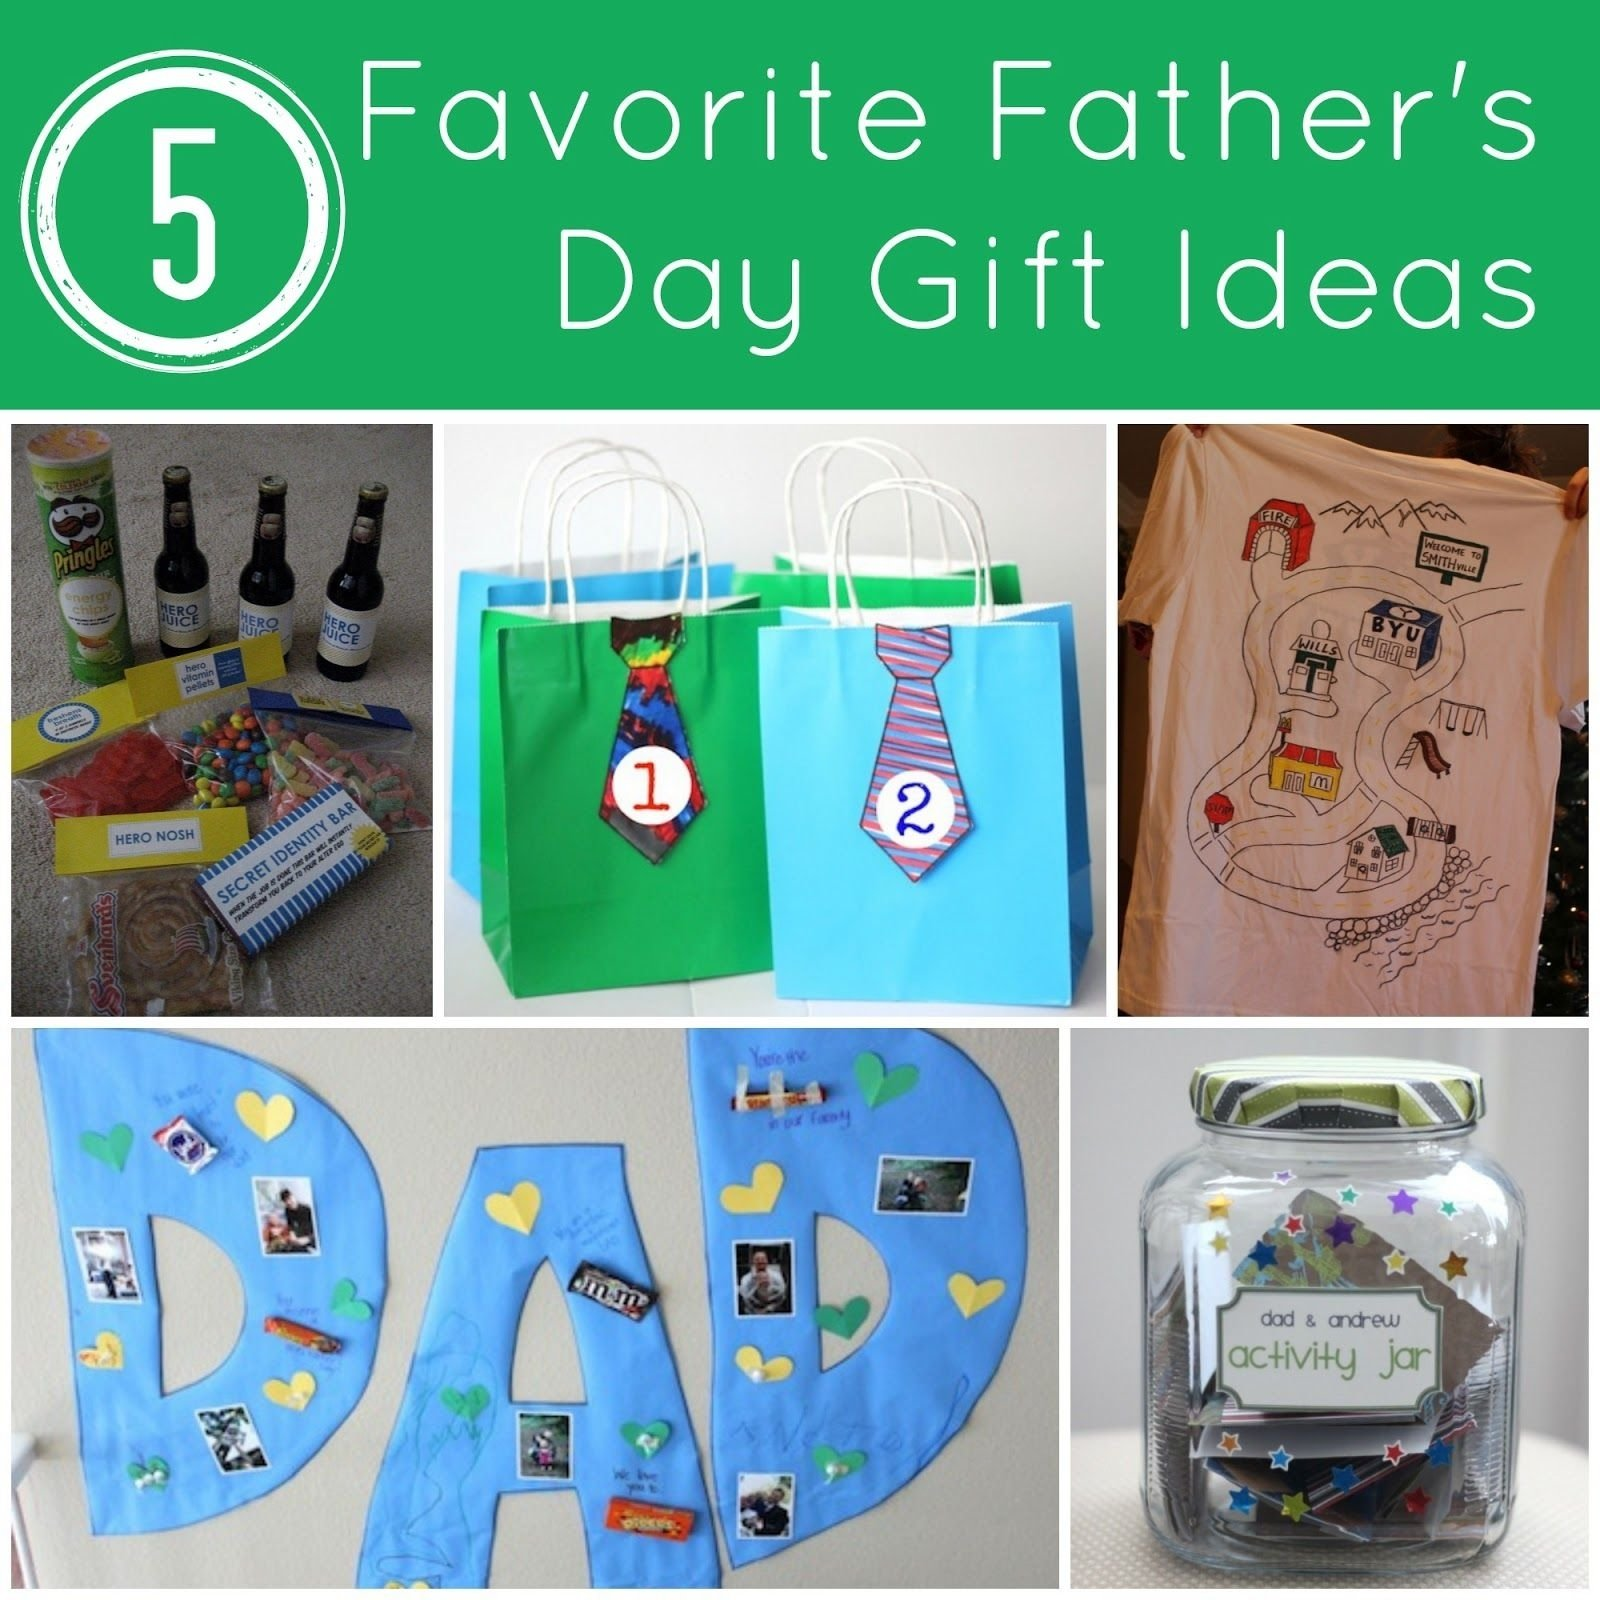 10 Great Gift Ideas For Fathers Day 5 favorite fathers day gift ideas gift father and crafts 2020